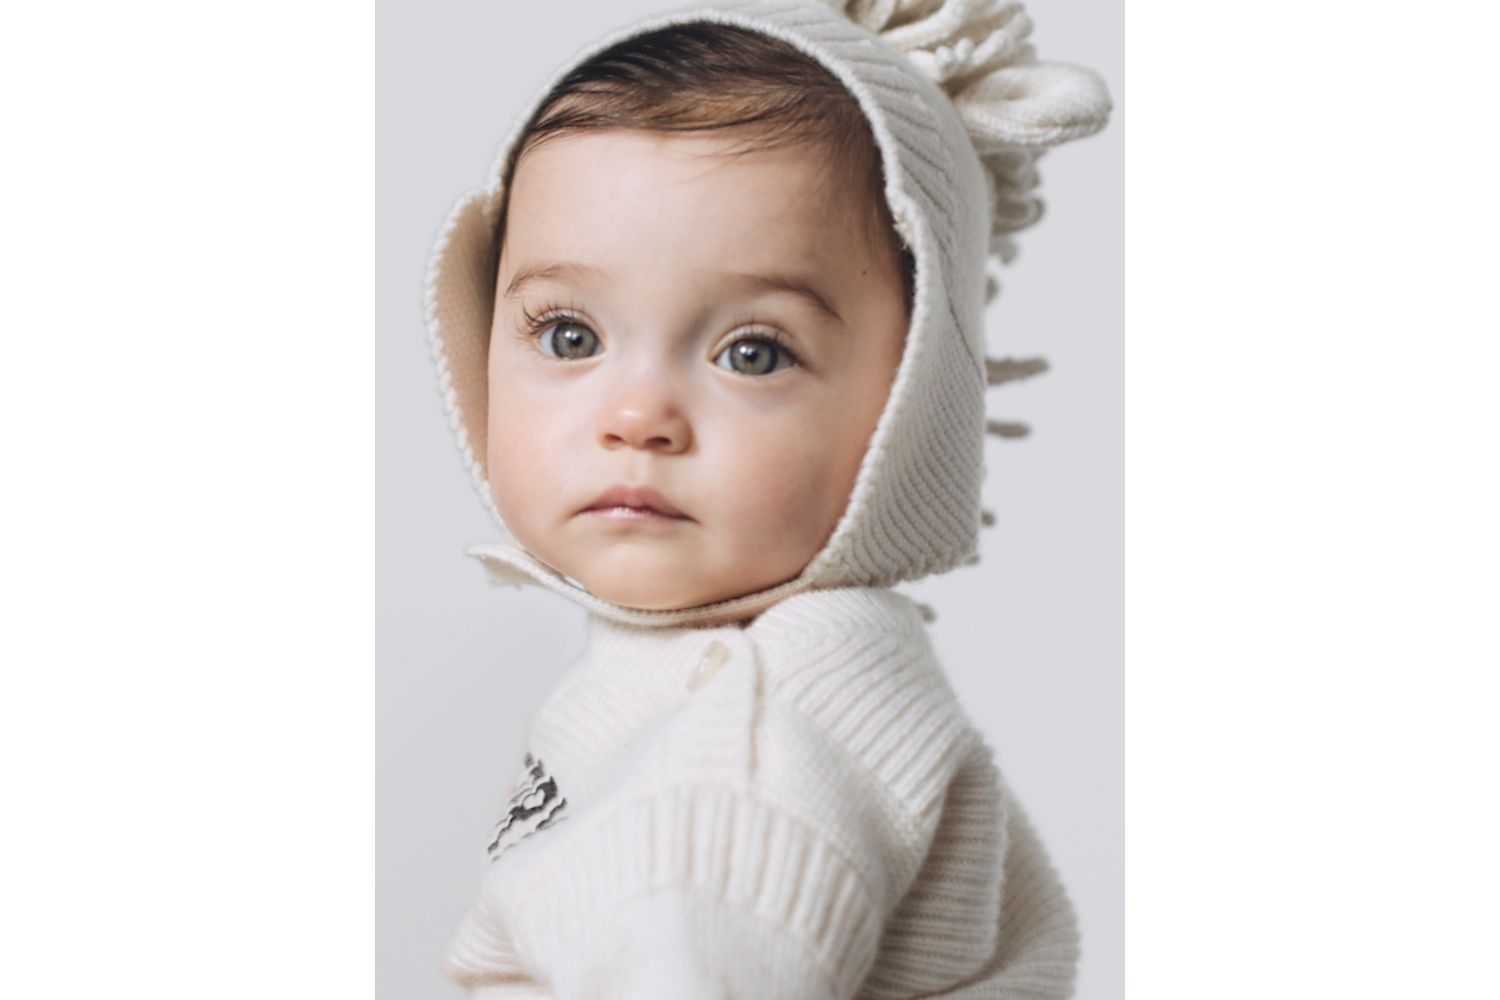 d00c757bc4380 Shop Childrenswear | Burberry® (United States)